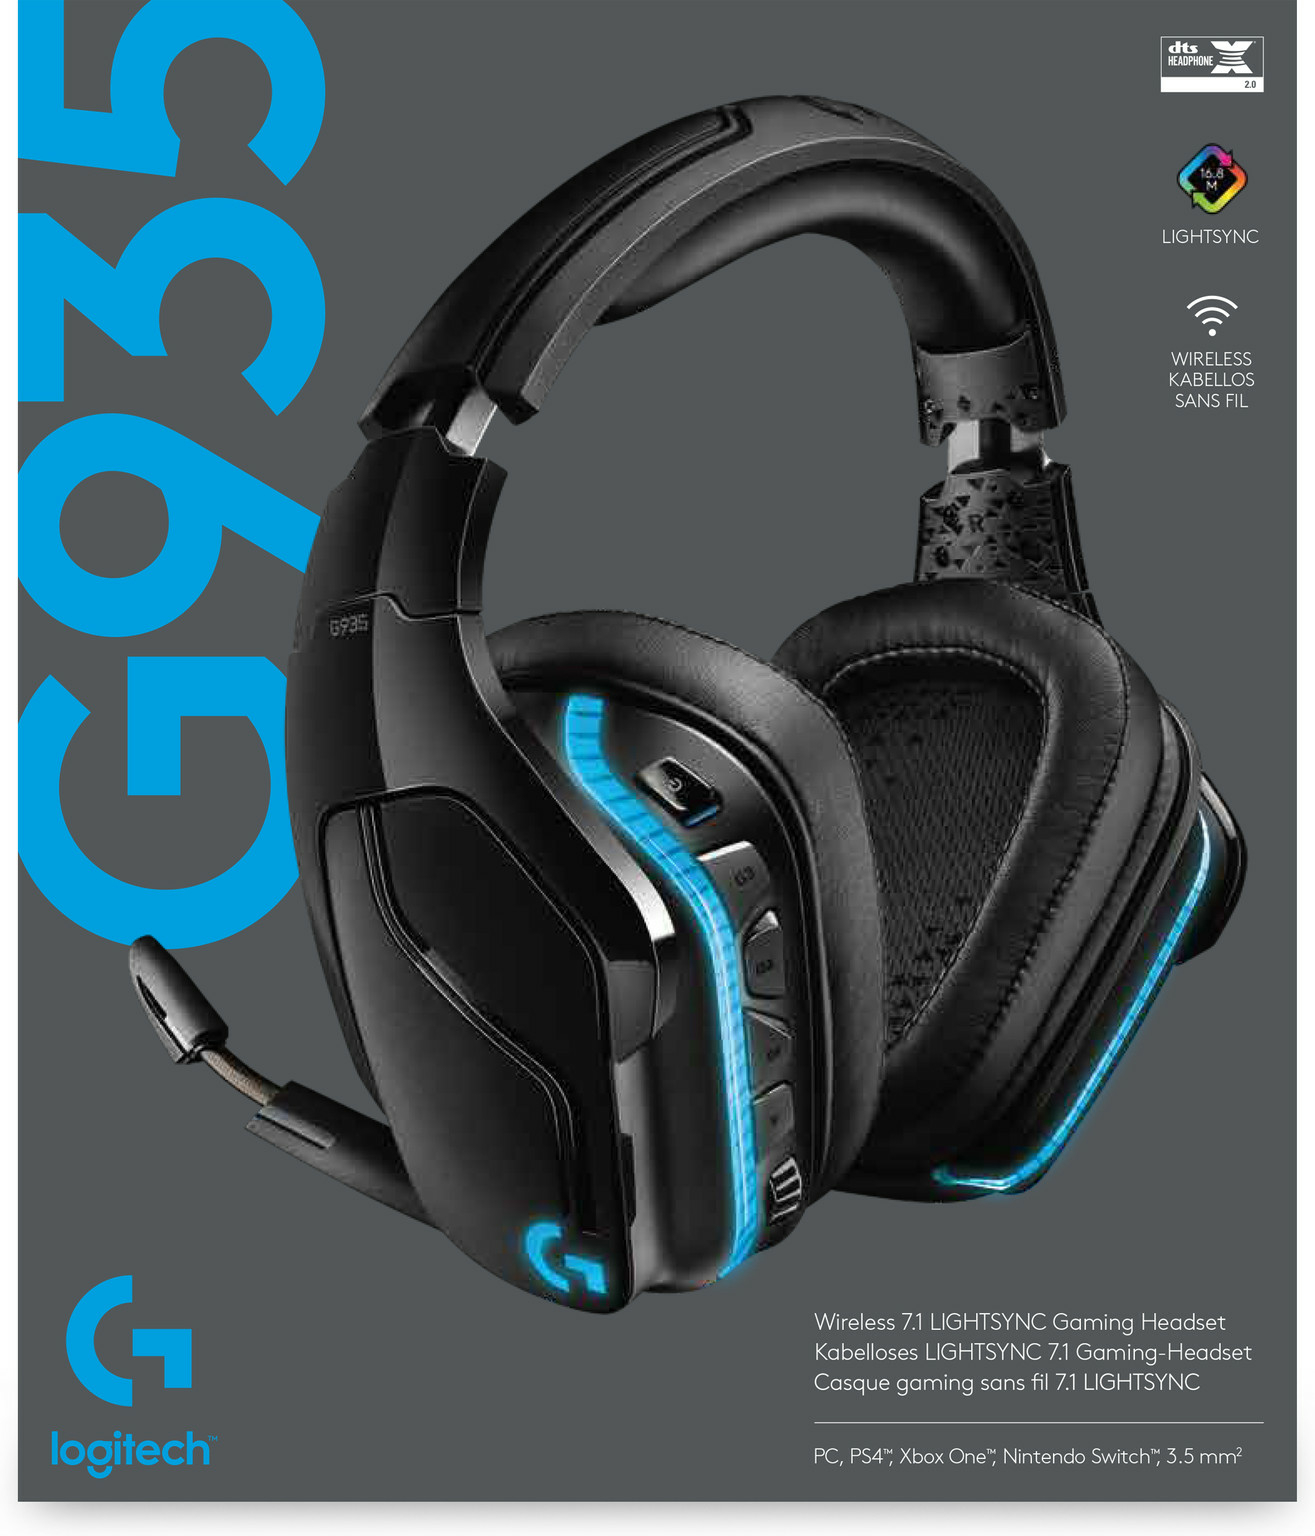 Review : Logitech G935 Surround LIGHTSYNC Gaming Headset